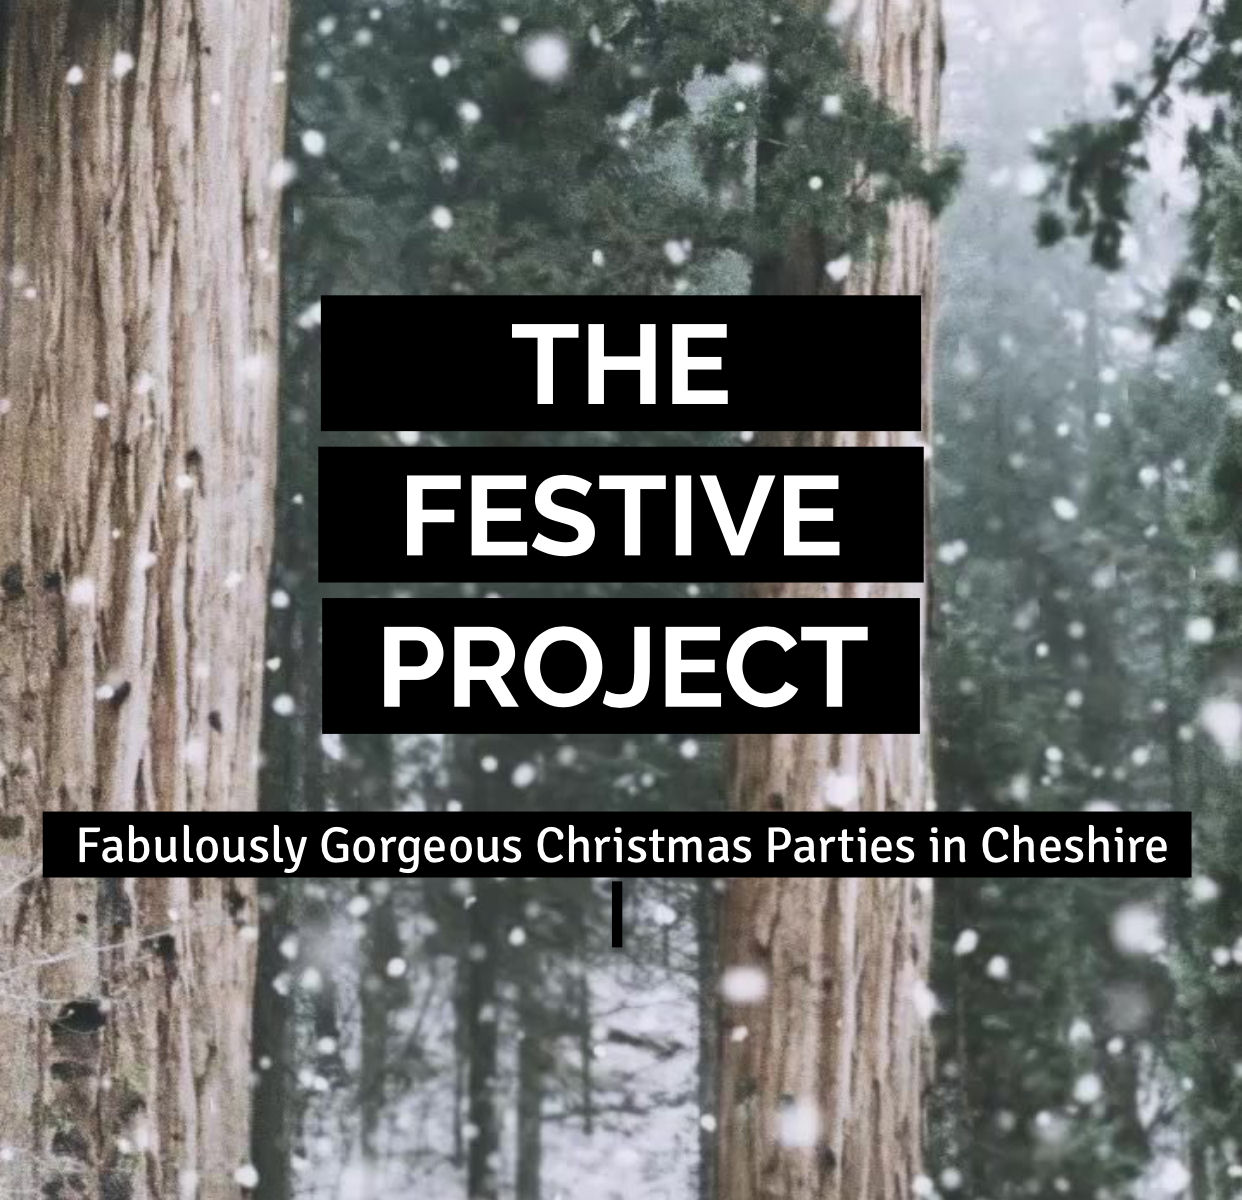 The Festive Project - Thursday 30th November